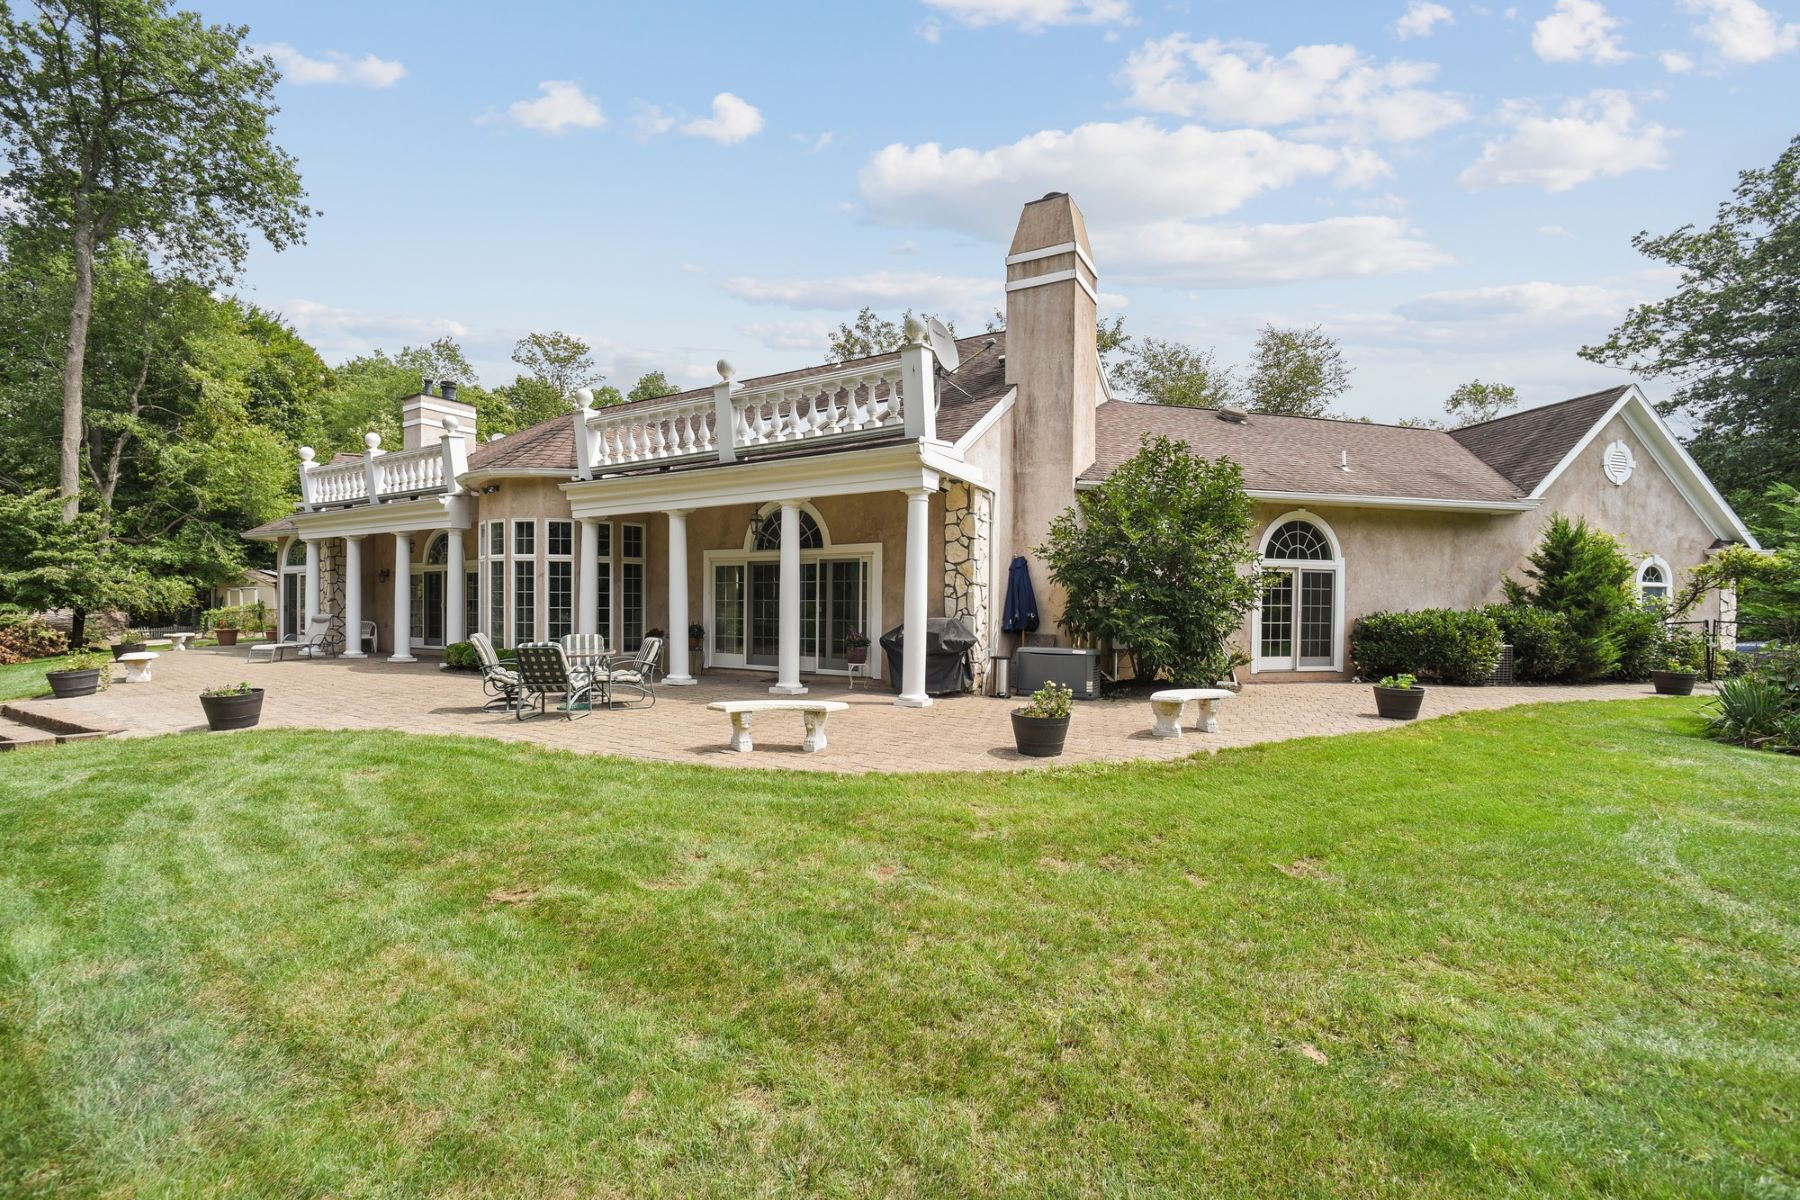 Single Family Homes for Active at Stunning, Private, Custom Chalet 129 Treadwell Avenue Chatham, New Jersey 07928 United States